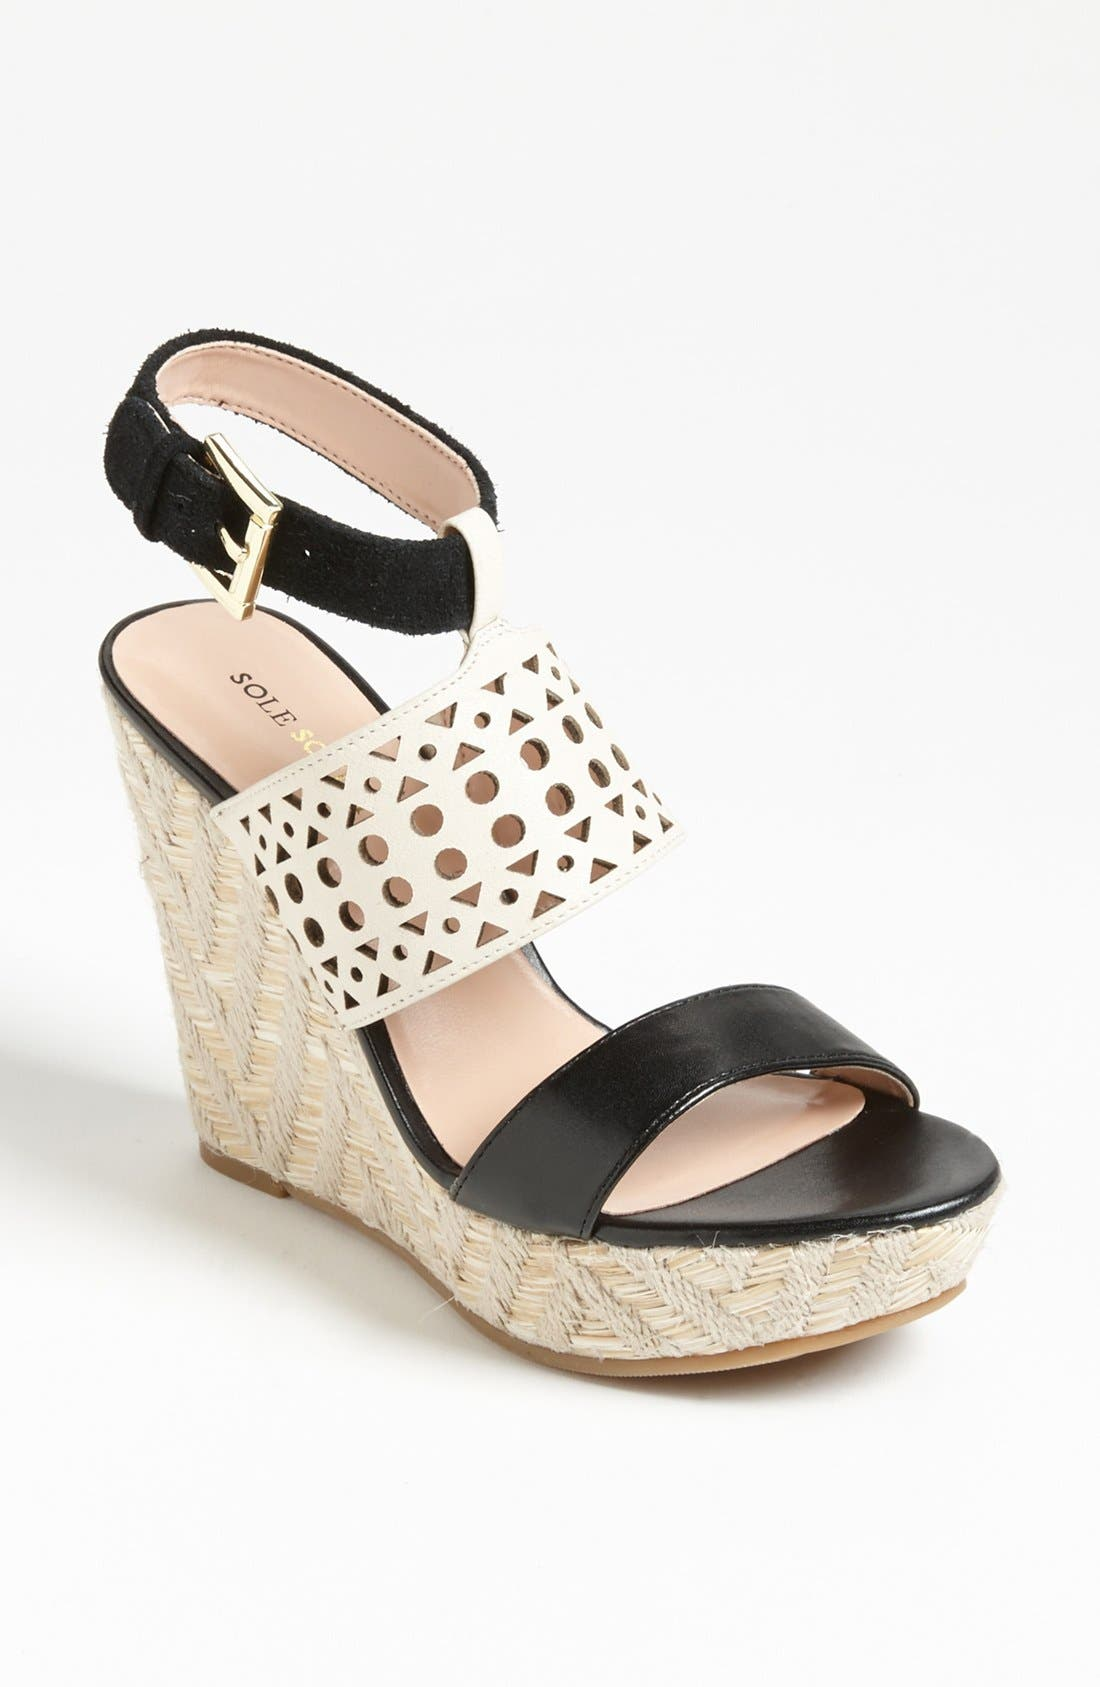 Alternate Image 1 Selected - Sole Society 'Bristol' Wedge Sandal